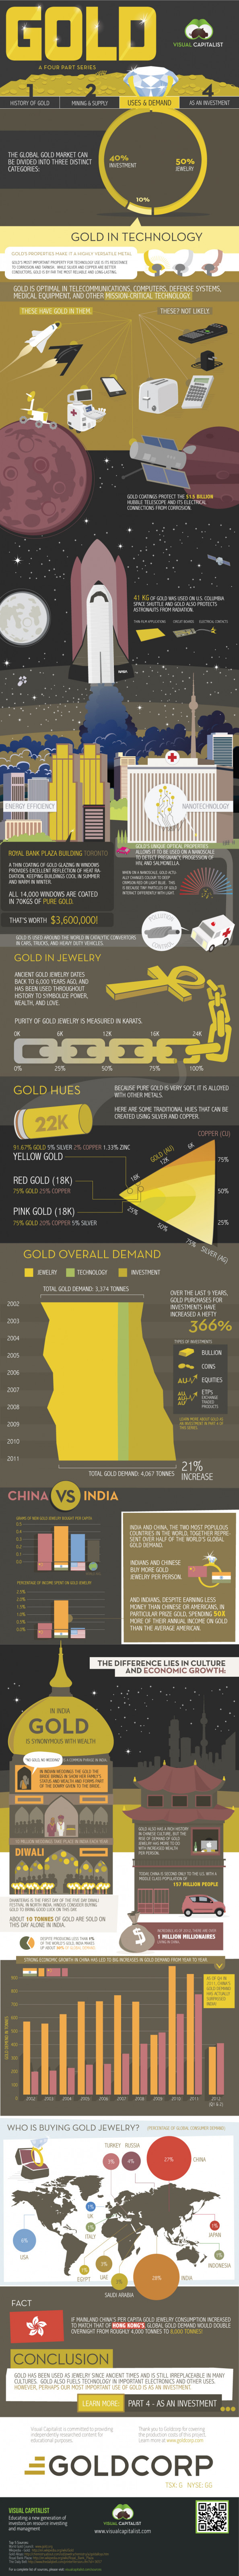 Gold Part III: Uses and Demand Infographic